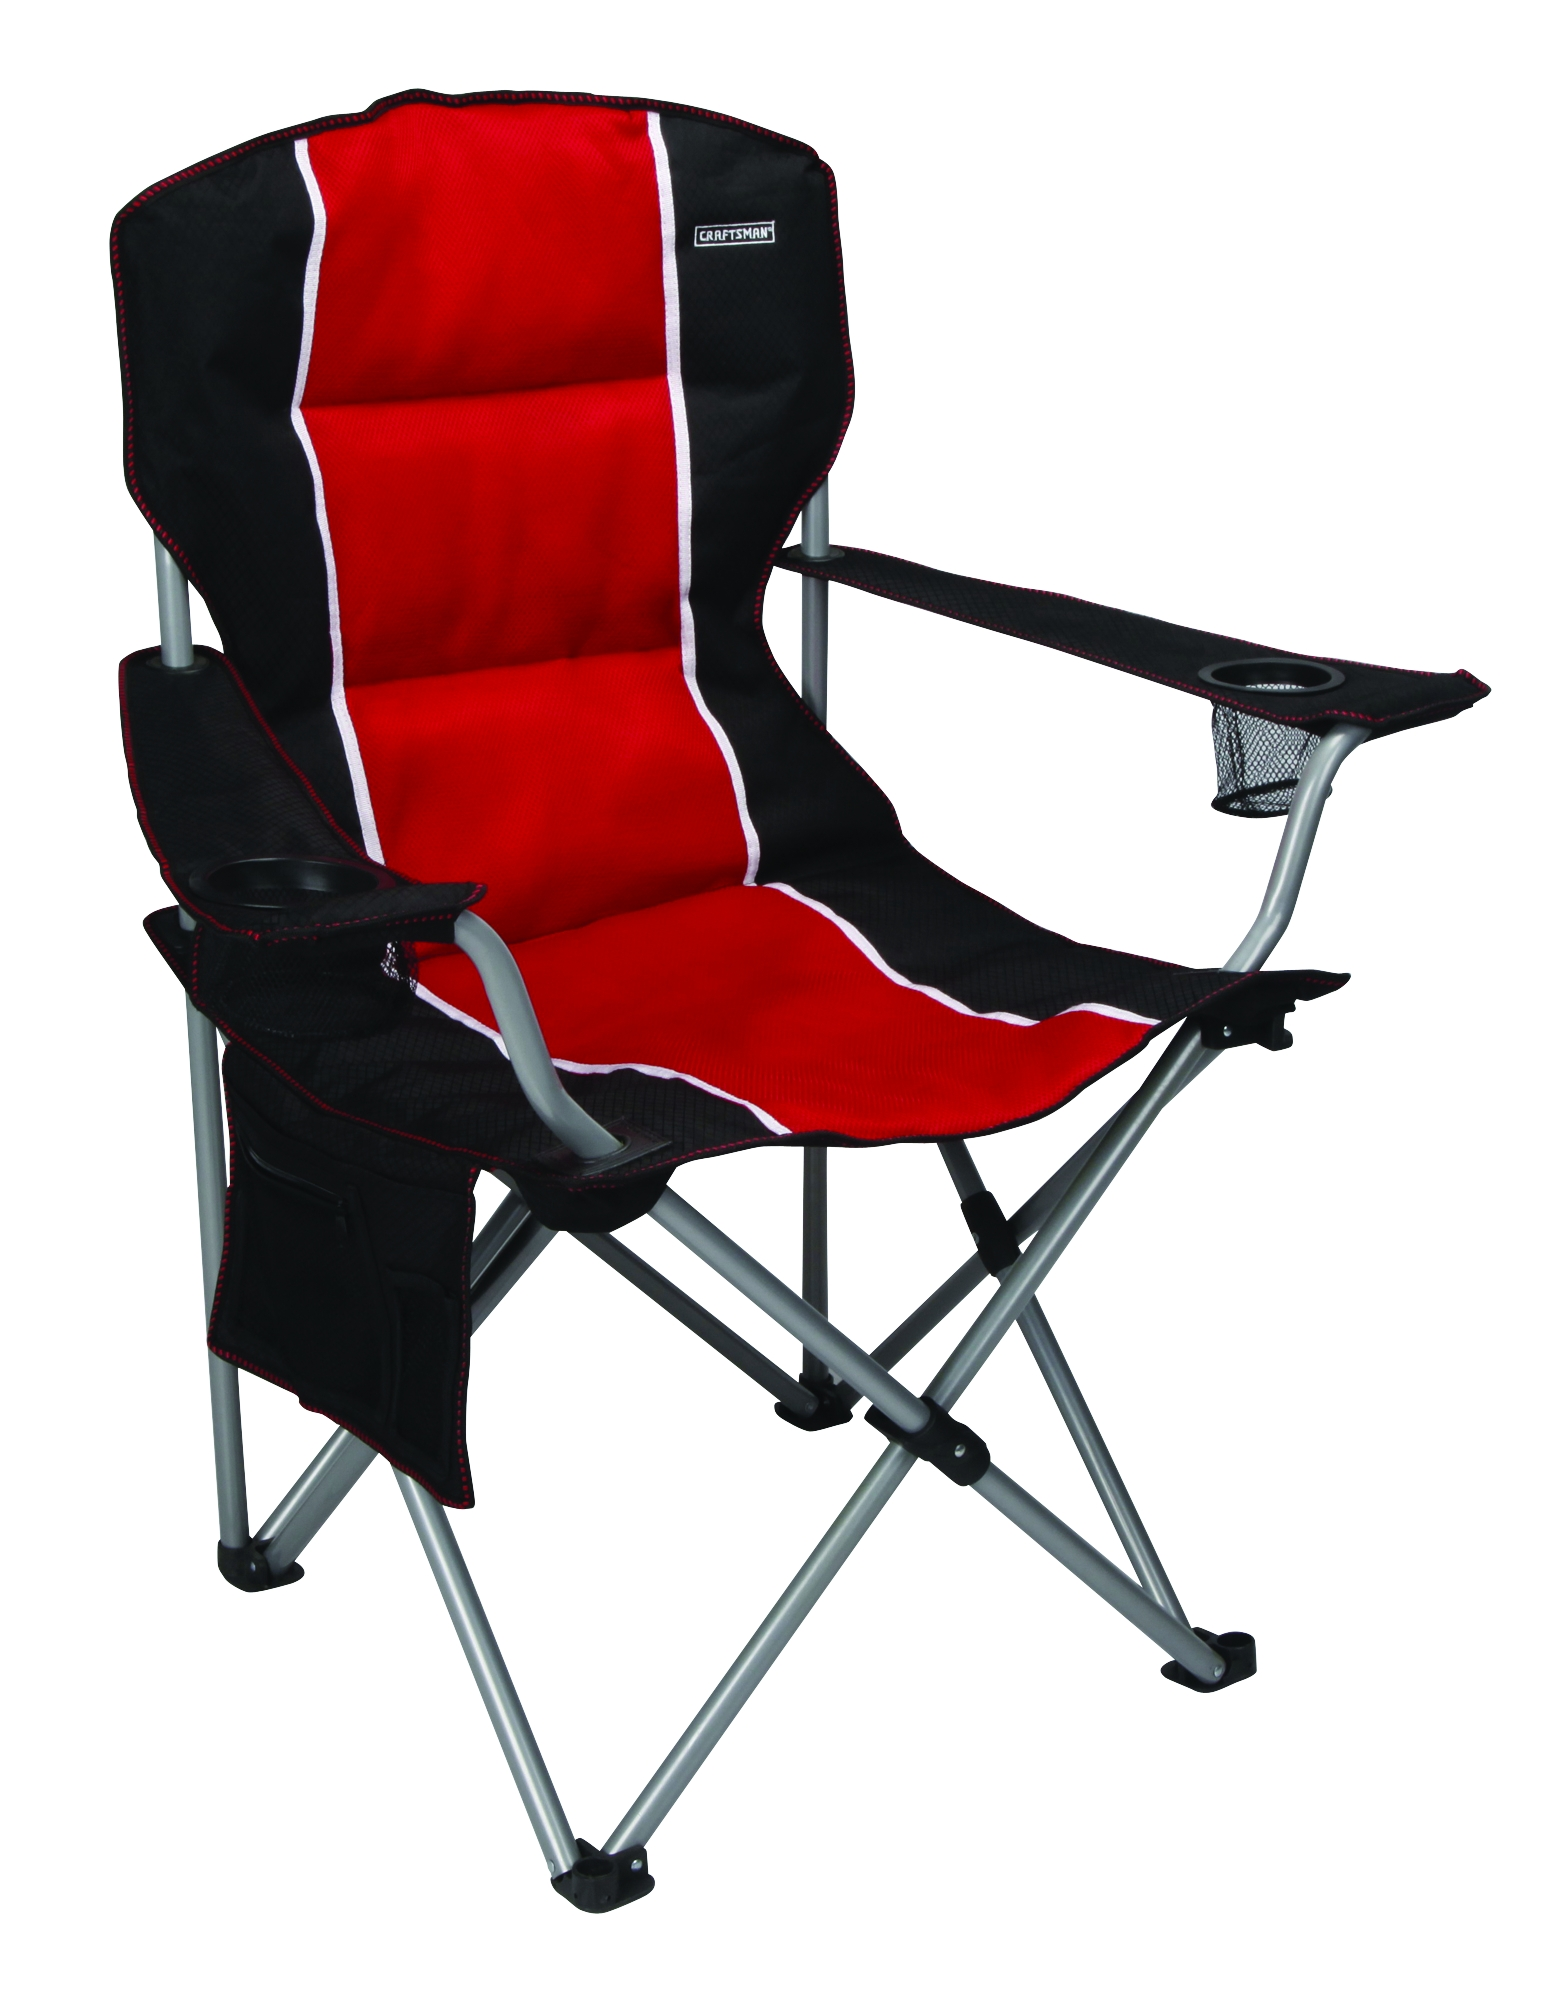 Craftsman Padded Chair Red awsome folding outdoor Camping